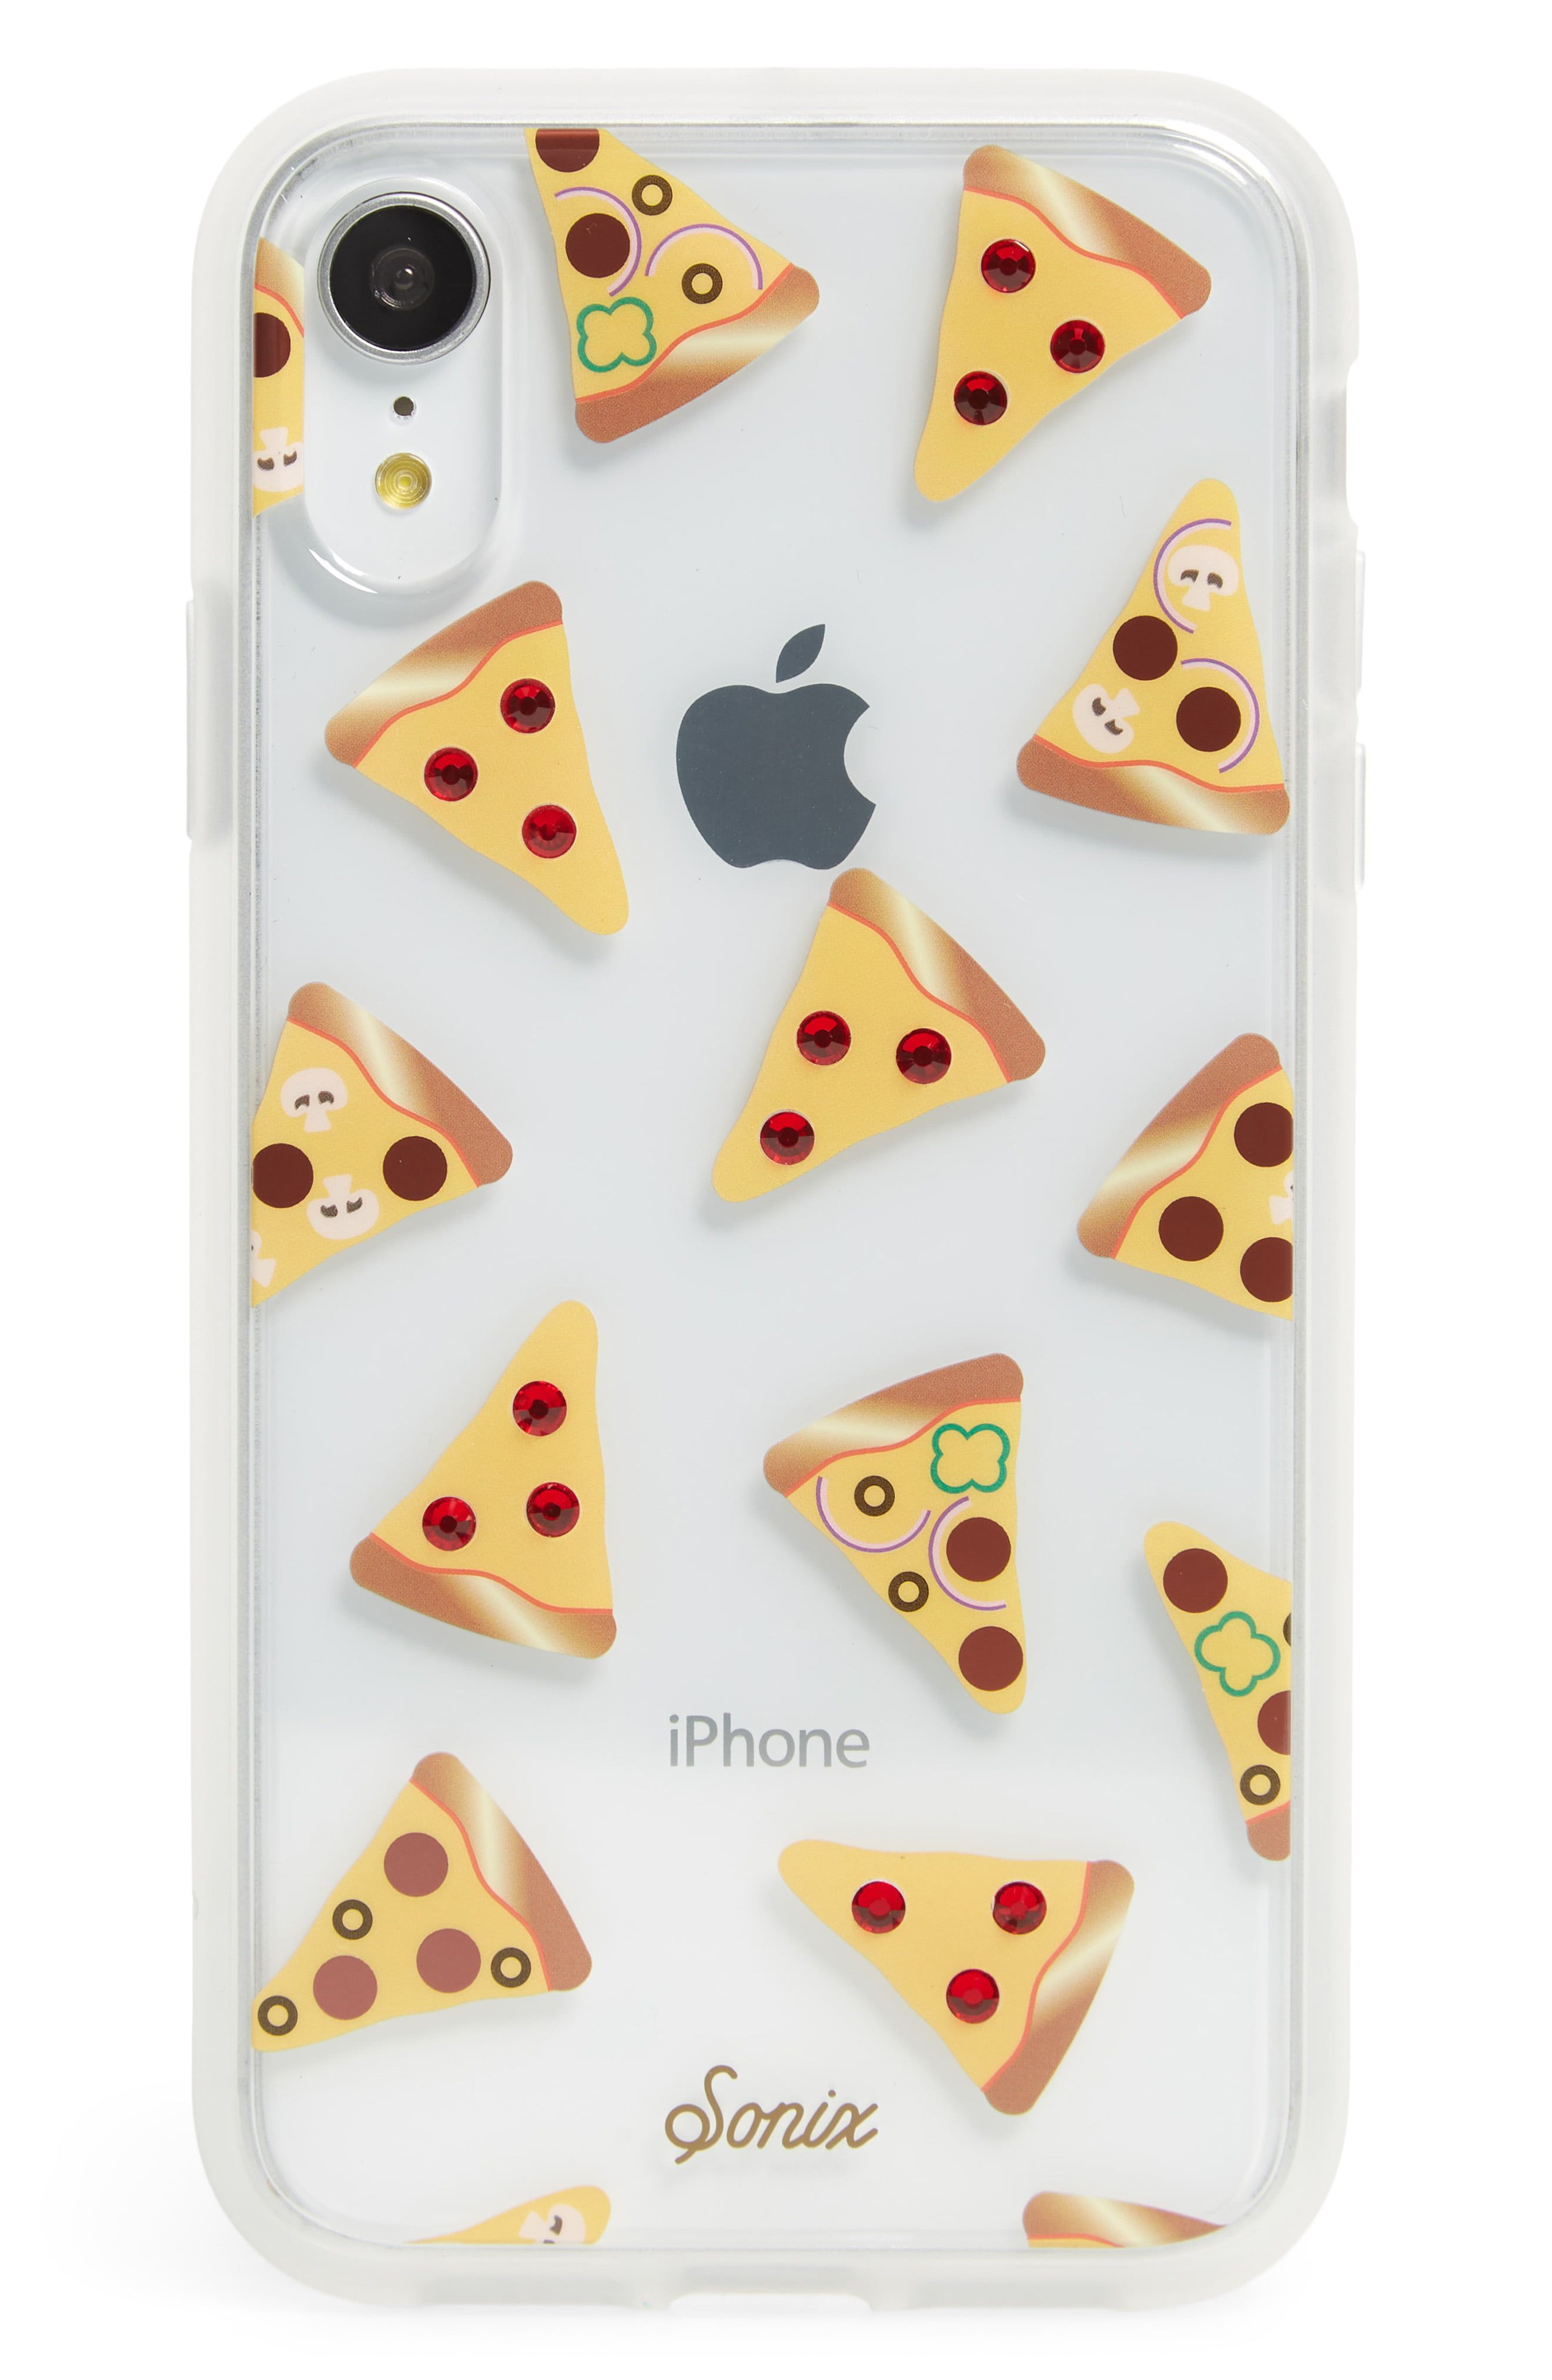 Sonix slice up your life iphone xxs xr x max case